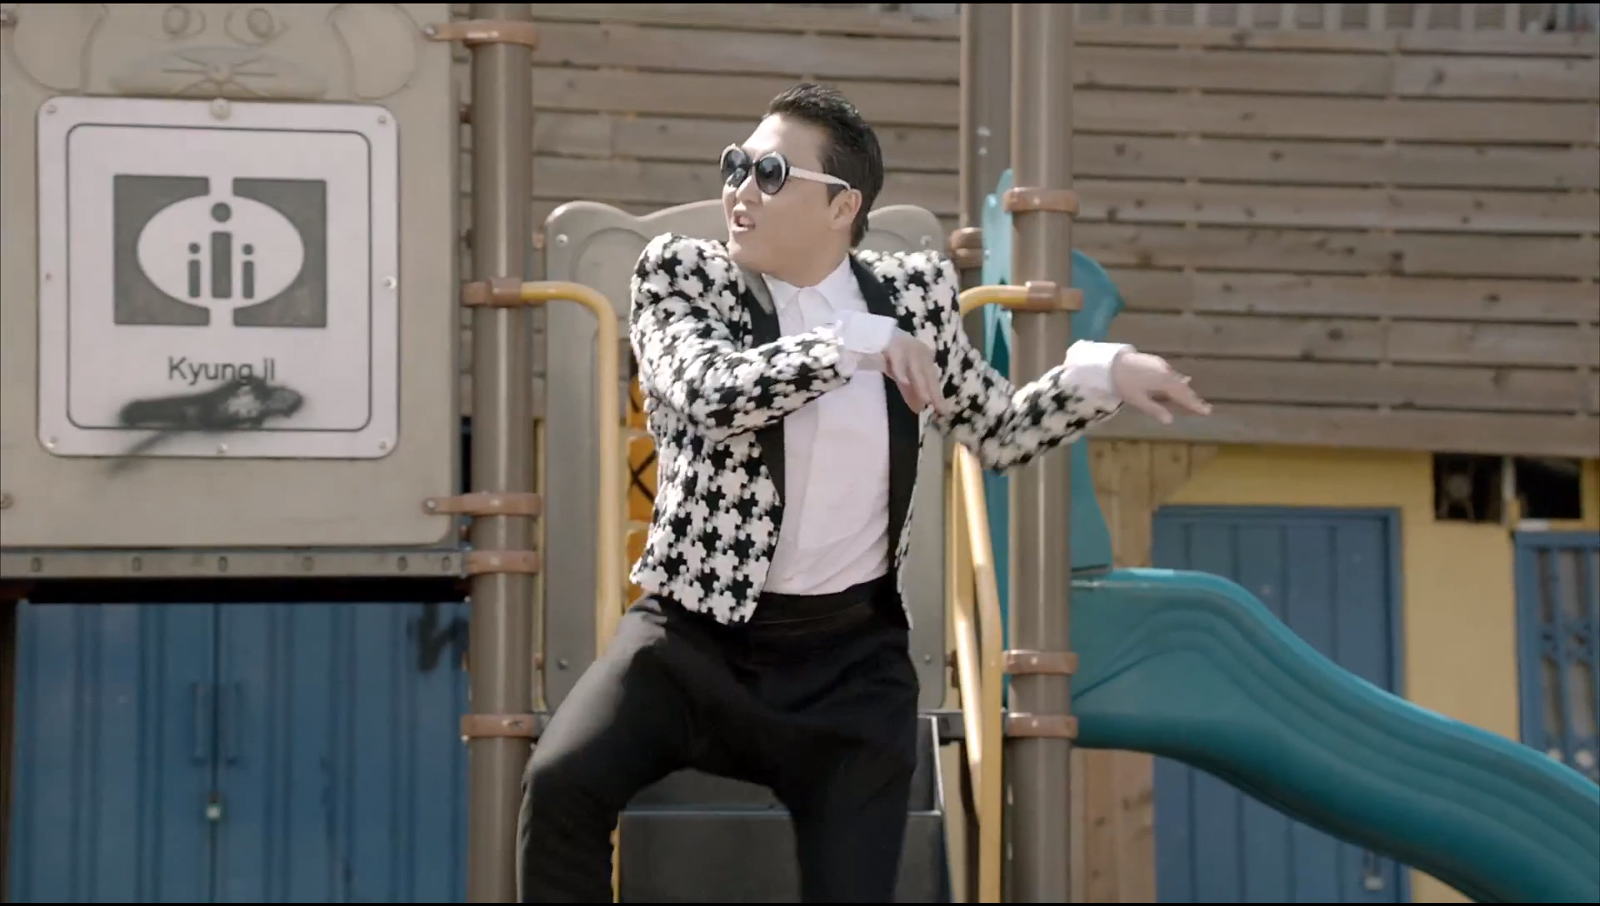 How to do Psy's Gentleman dance